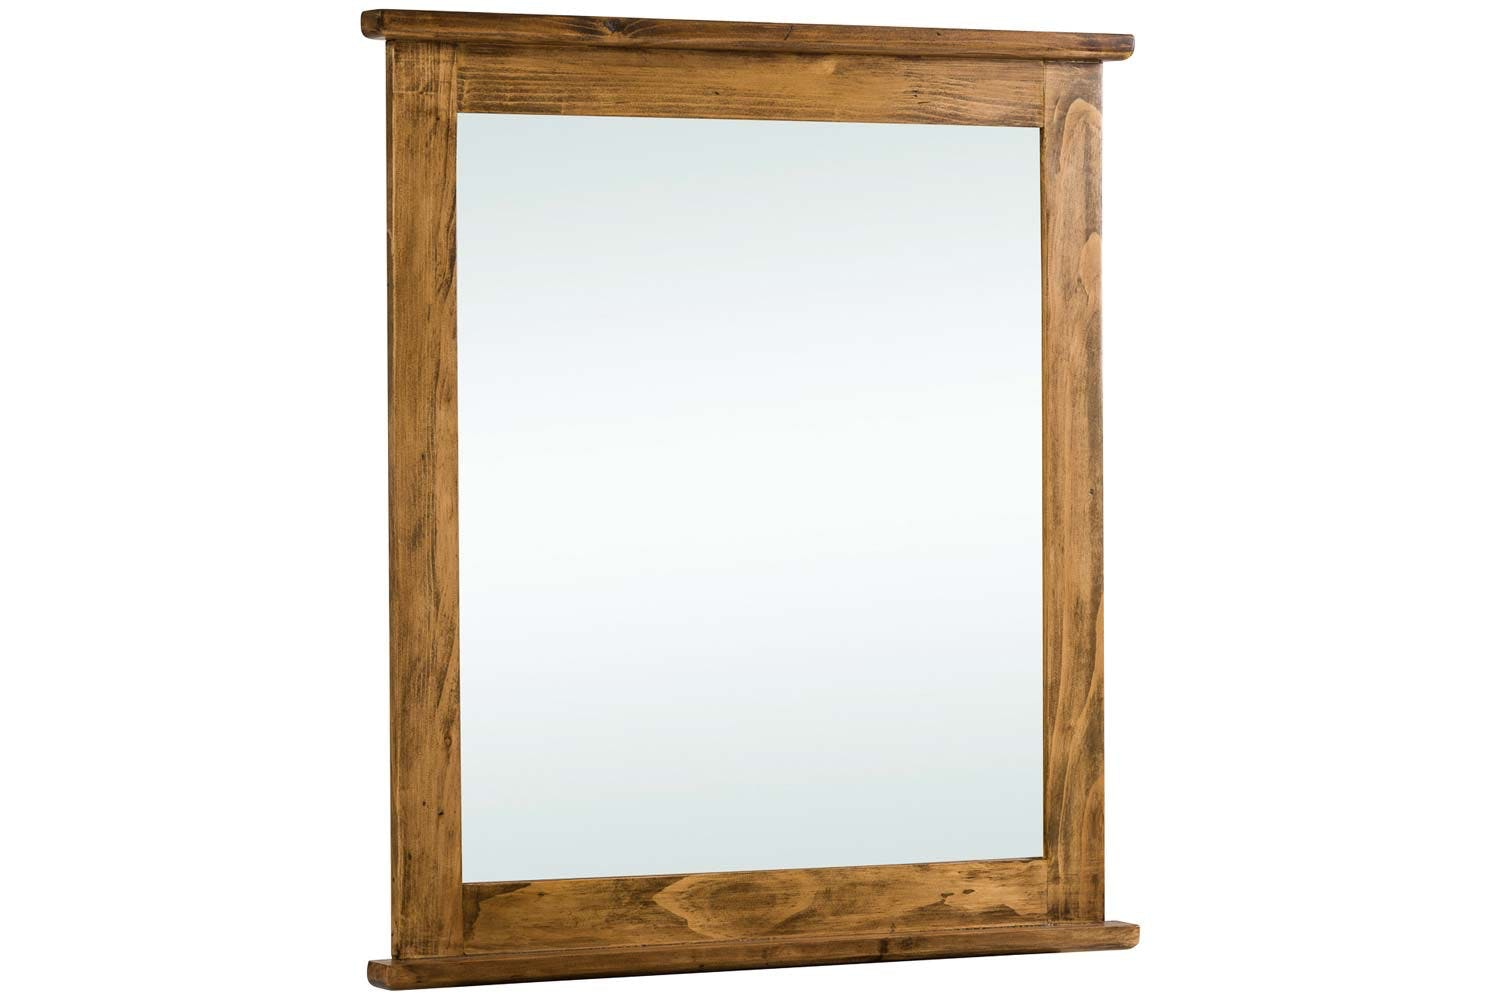 Galveston Dresser Mirror